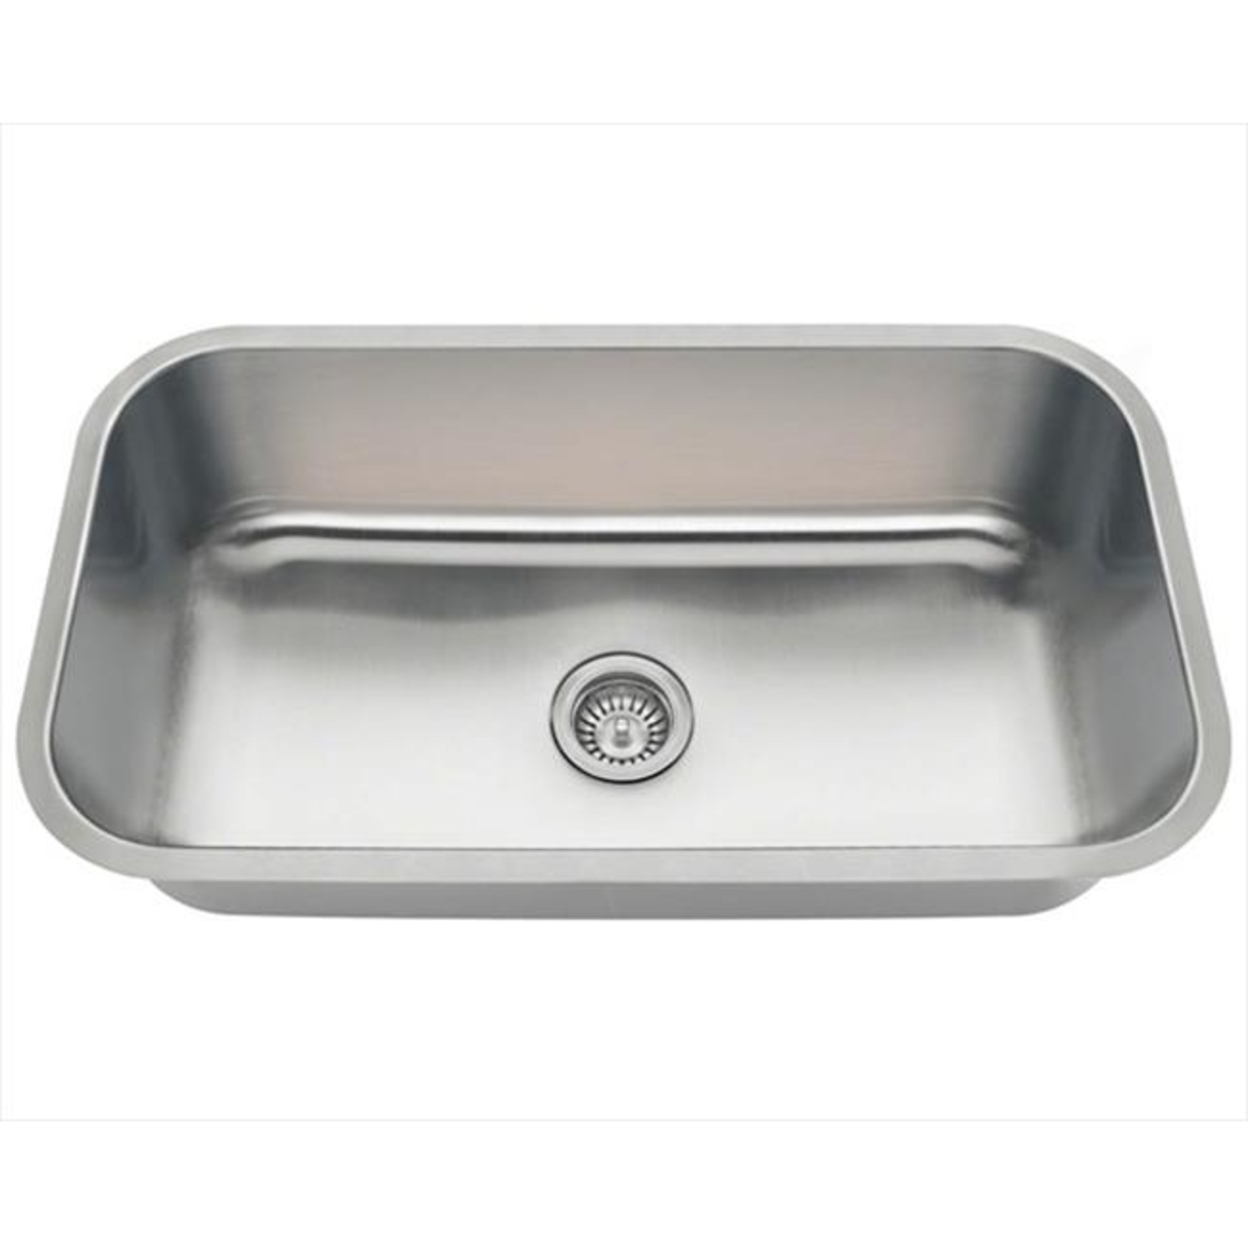 MR Direct 3218C Undermount Stainless Steel Kitchen Sink 5a3d40b5e2246104511437ab